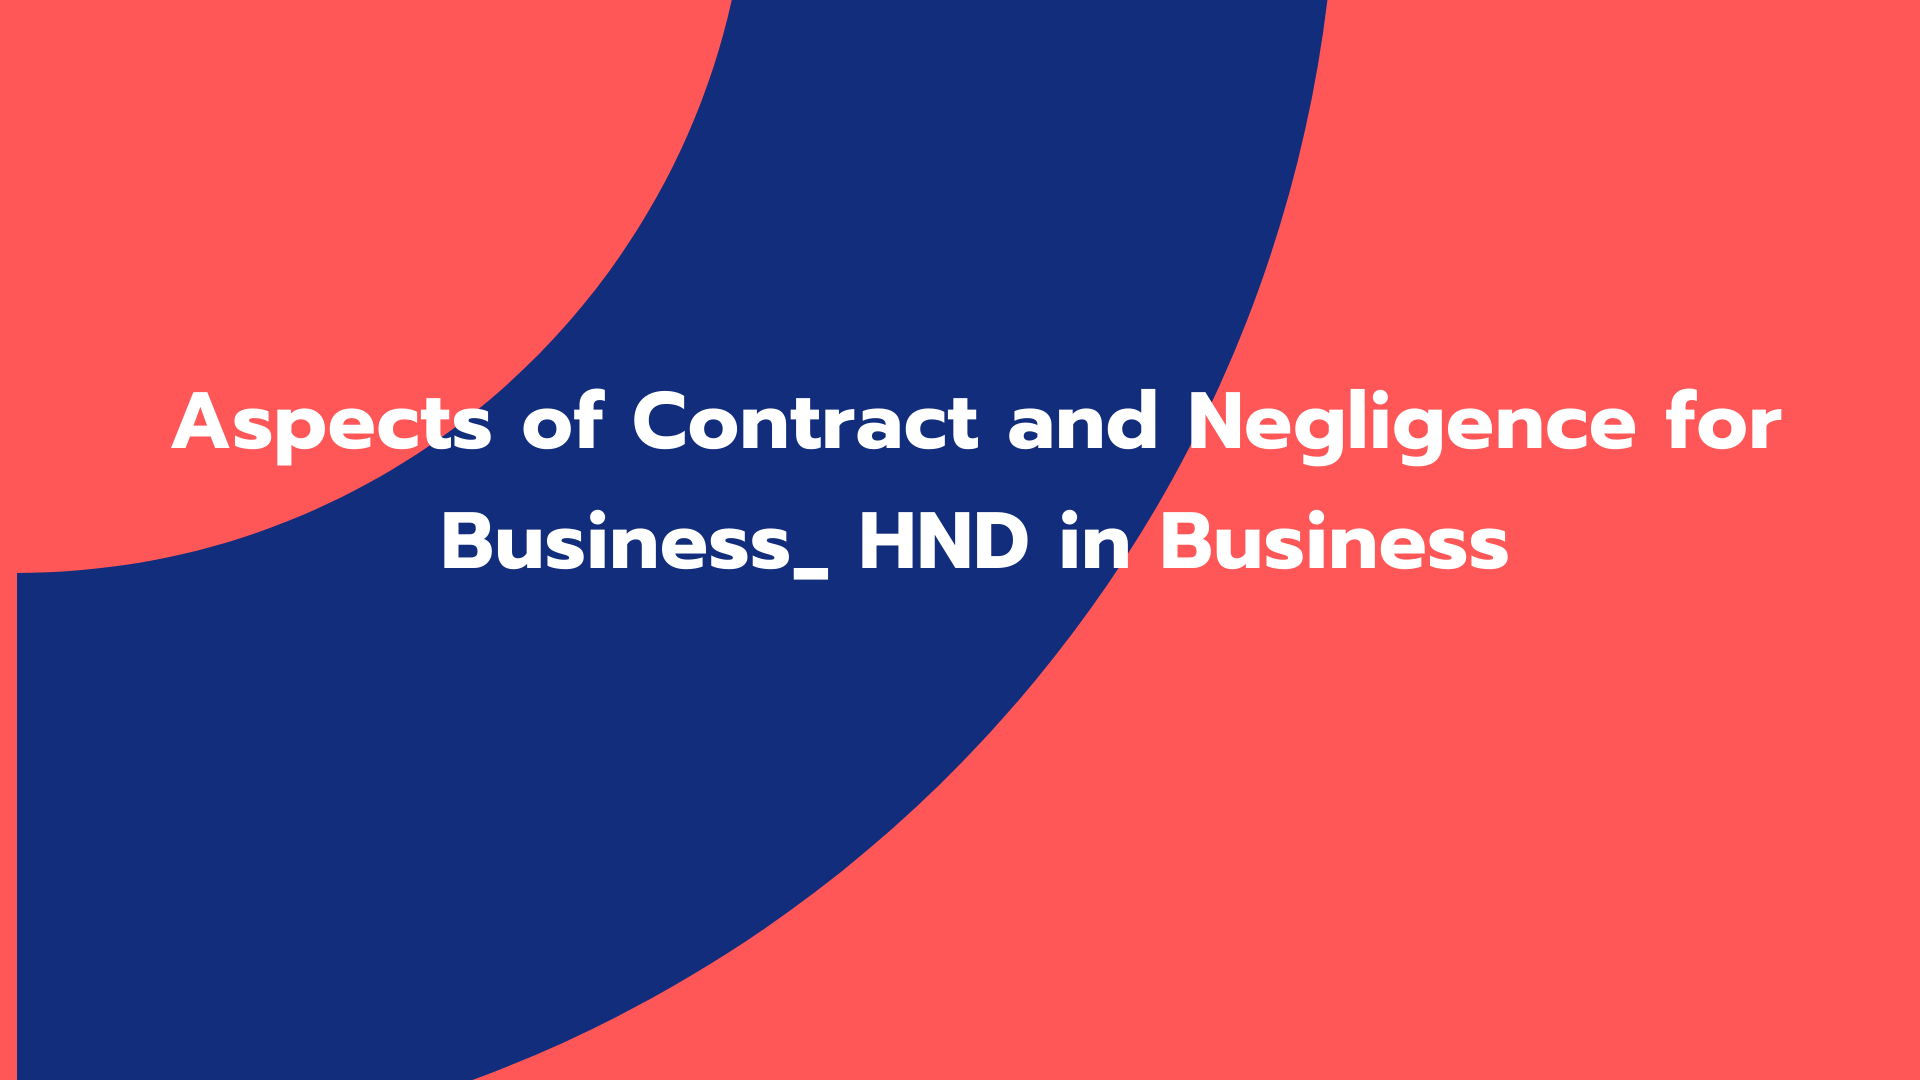 Aspects of Contract and Negligence for Business_ HND in Business